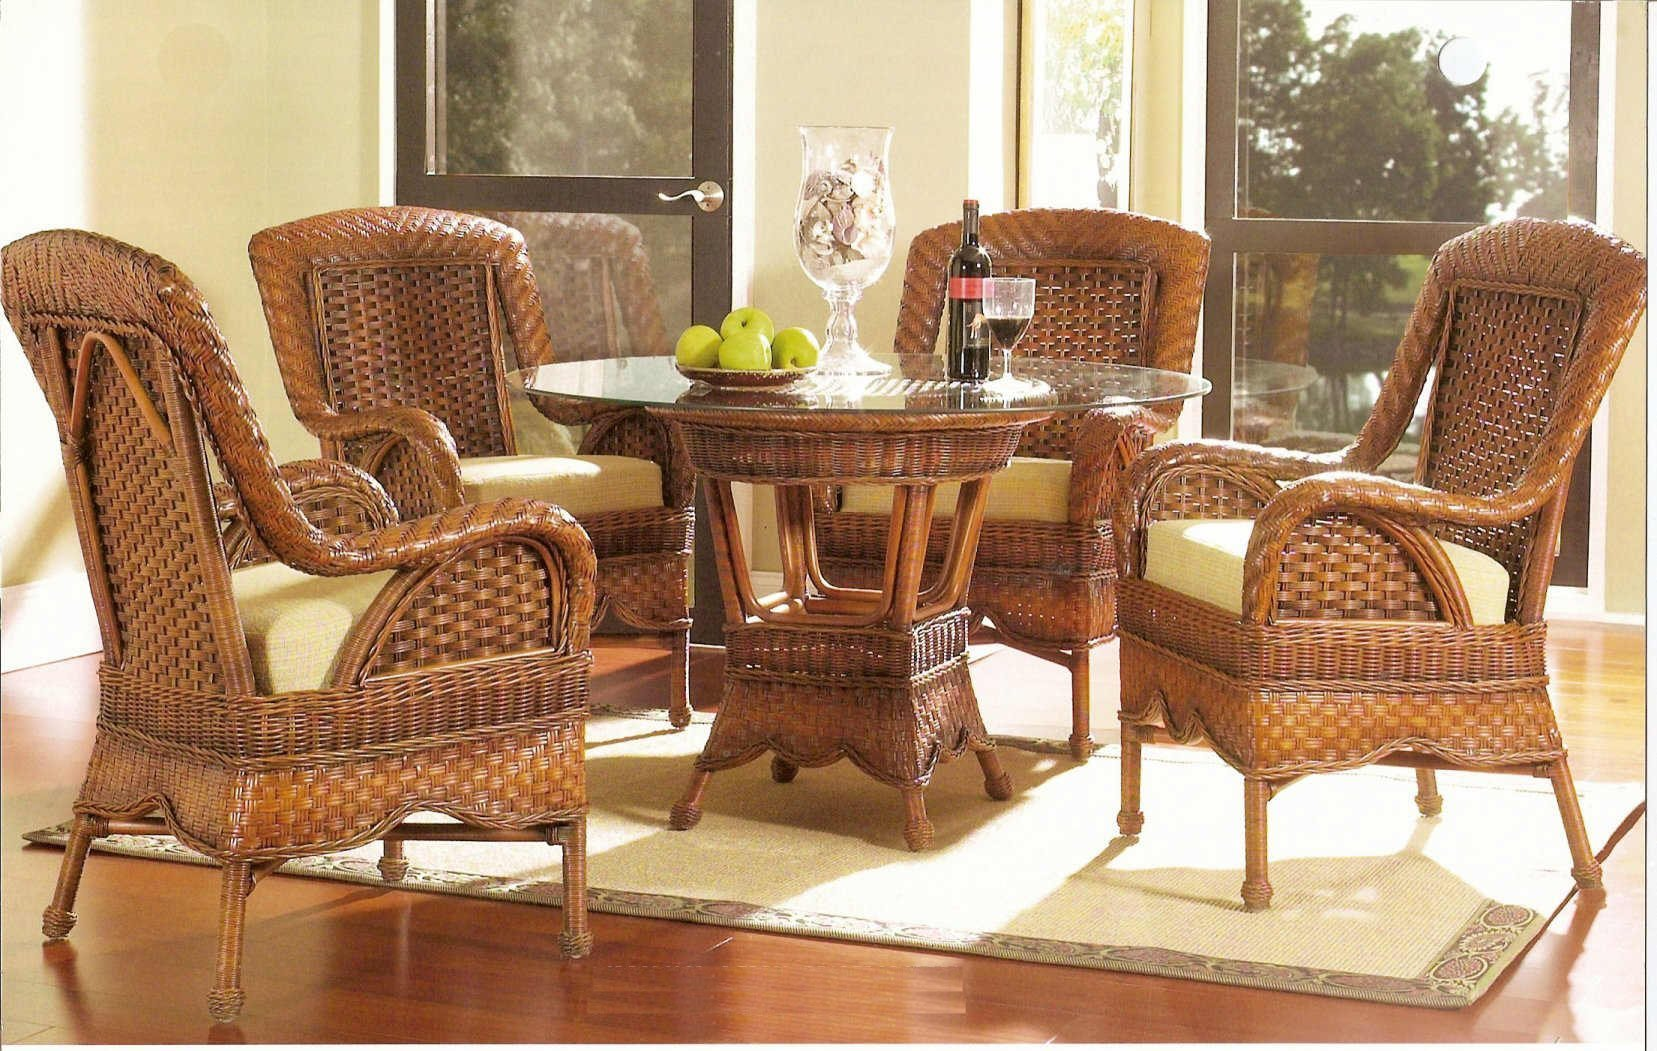 find this pin and more on bamboo, wicker u0026 rattan furniture. LGHVEVD